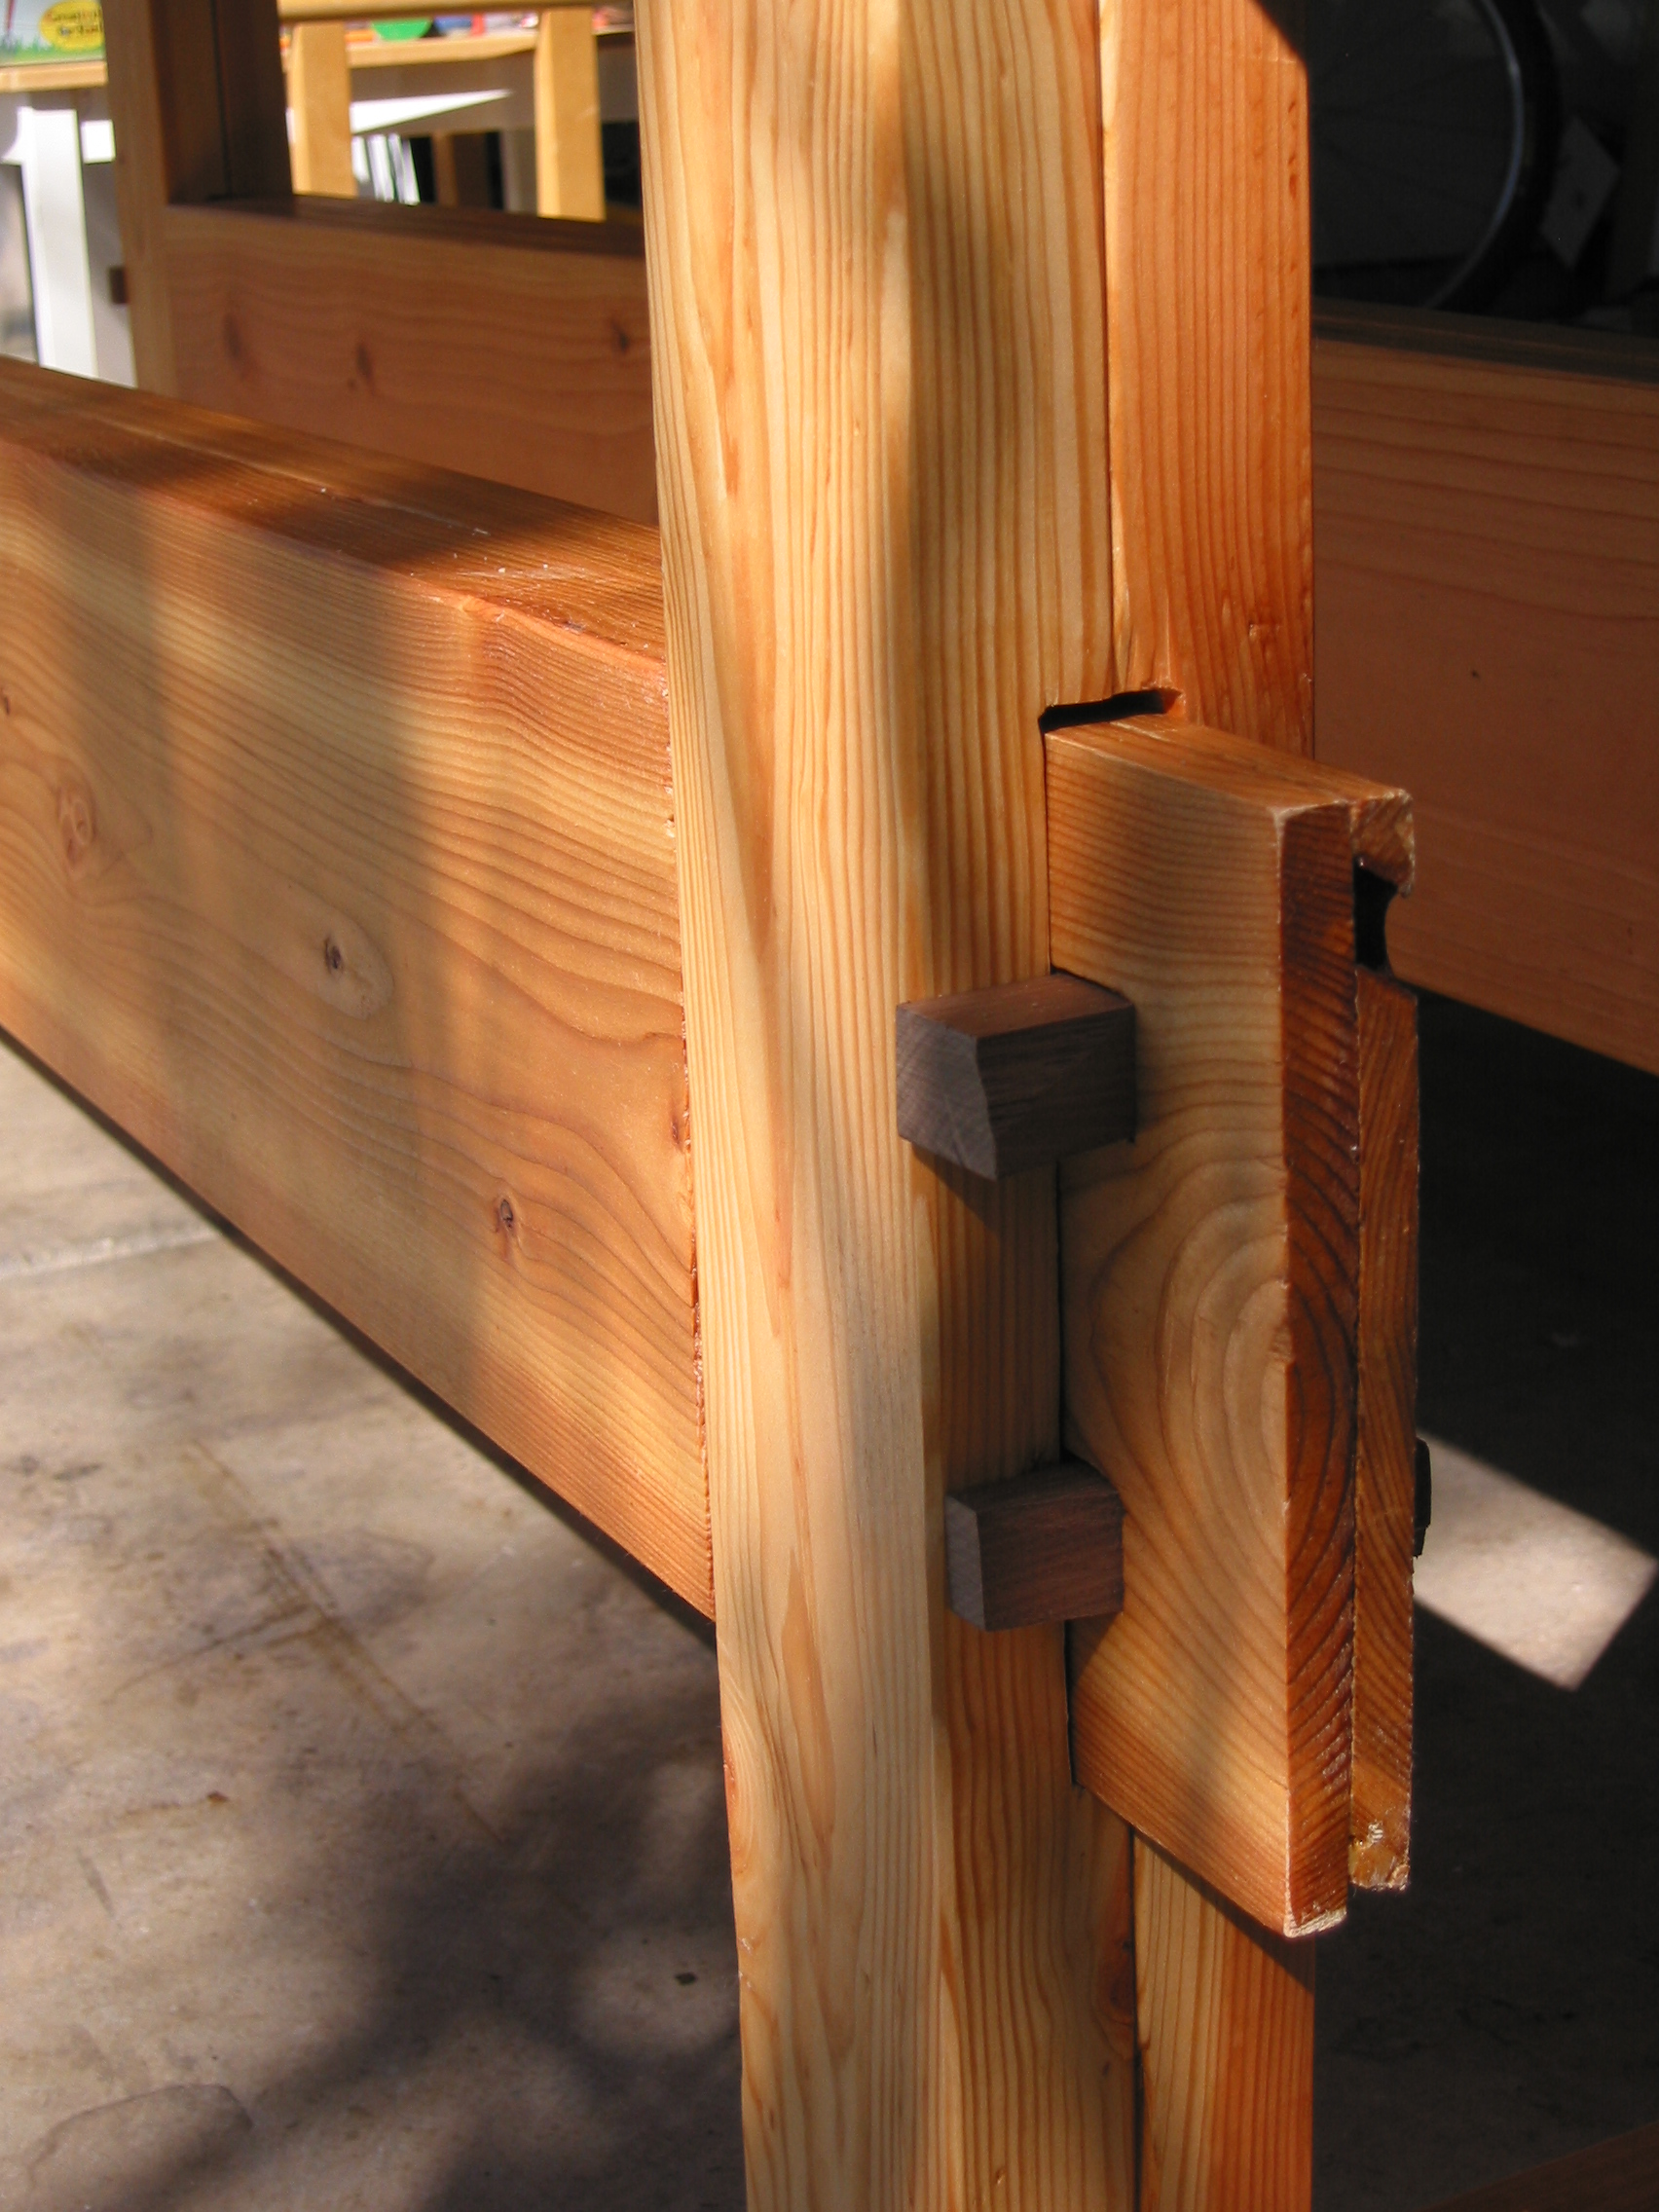 Make Wooden Bed Frame Stop Squeaking Mortise And Tenon